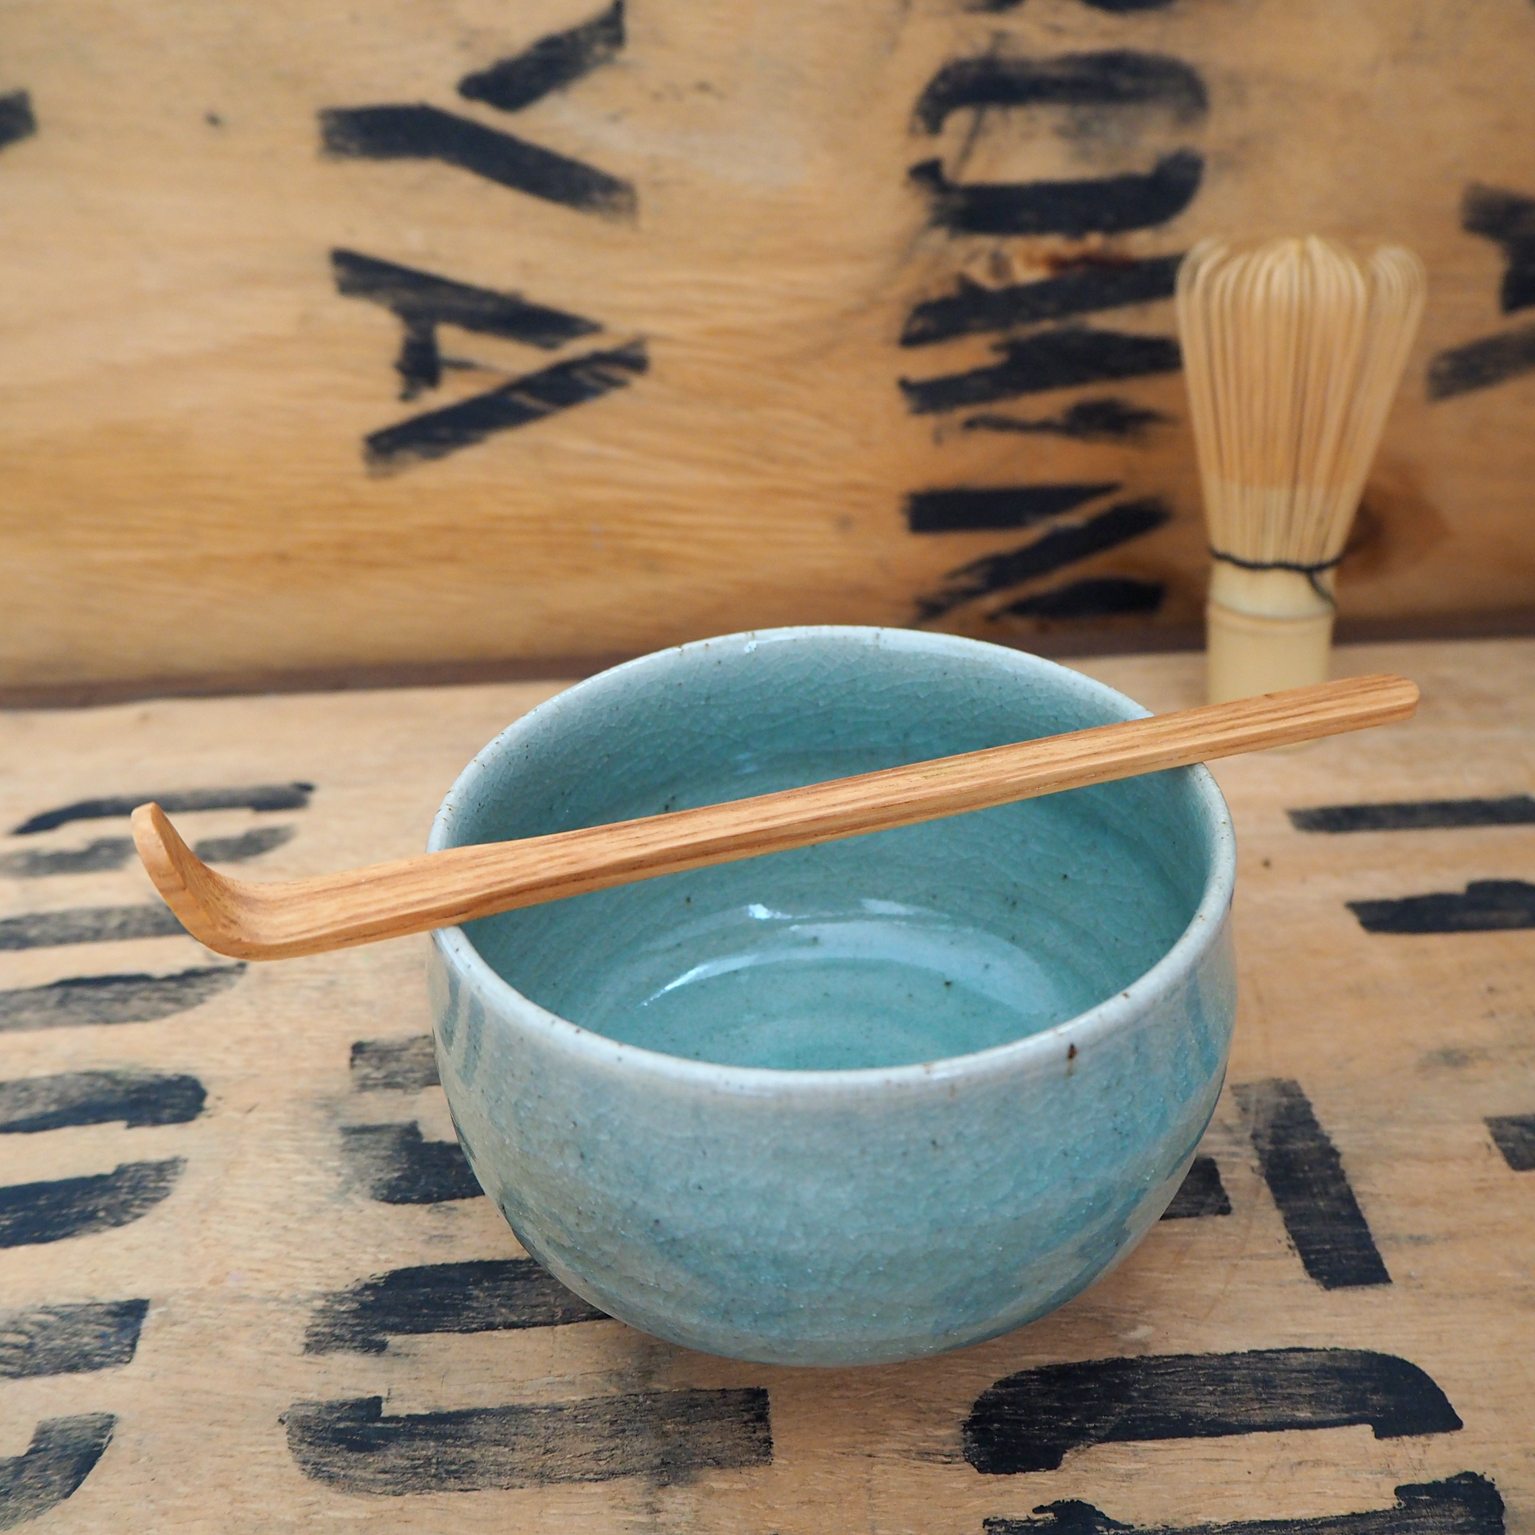 Ash Chashaku (Matcha Scoop) by Rosie Brewer